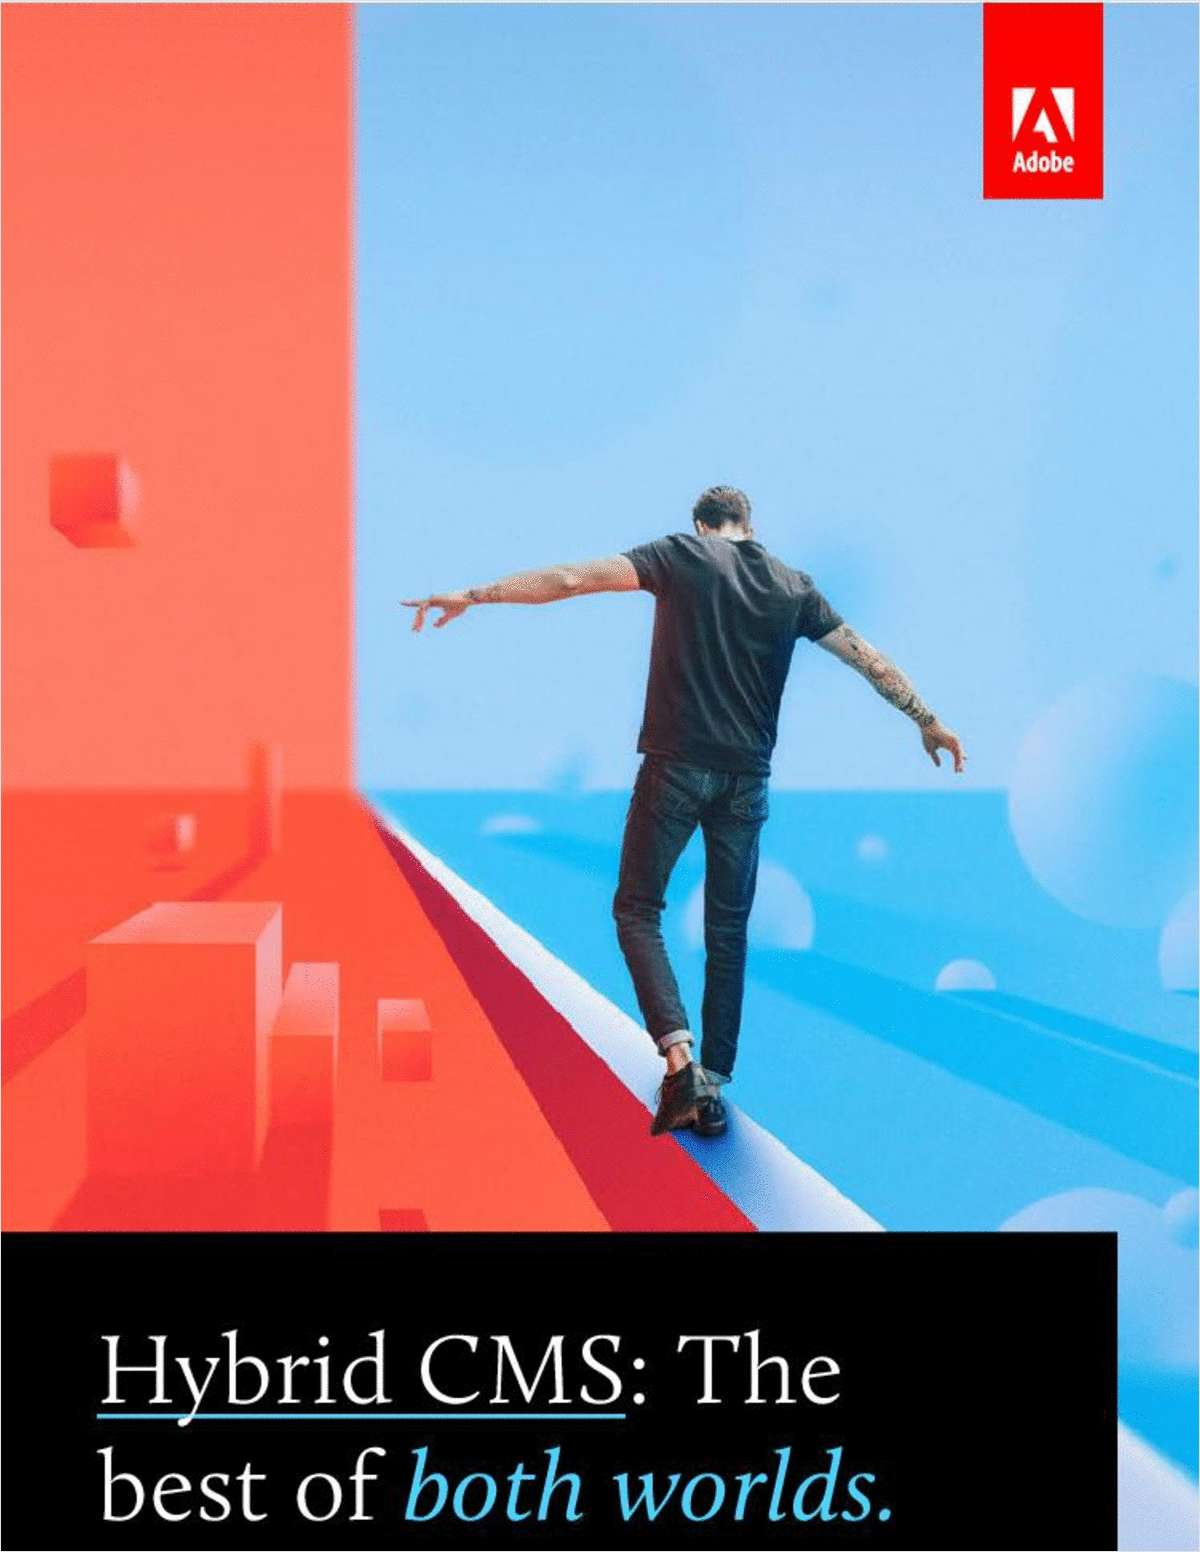 Hybrid CMS: The Best of Both Worlds